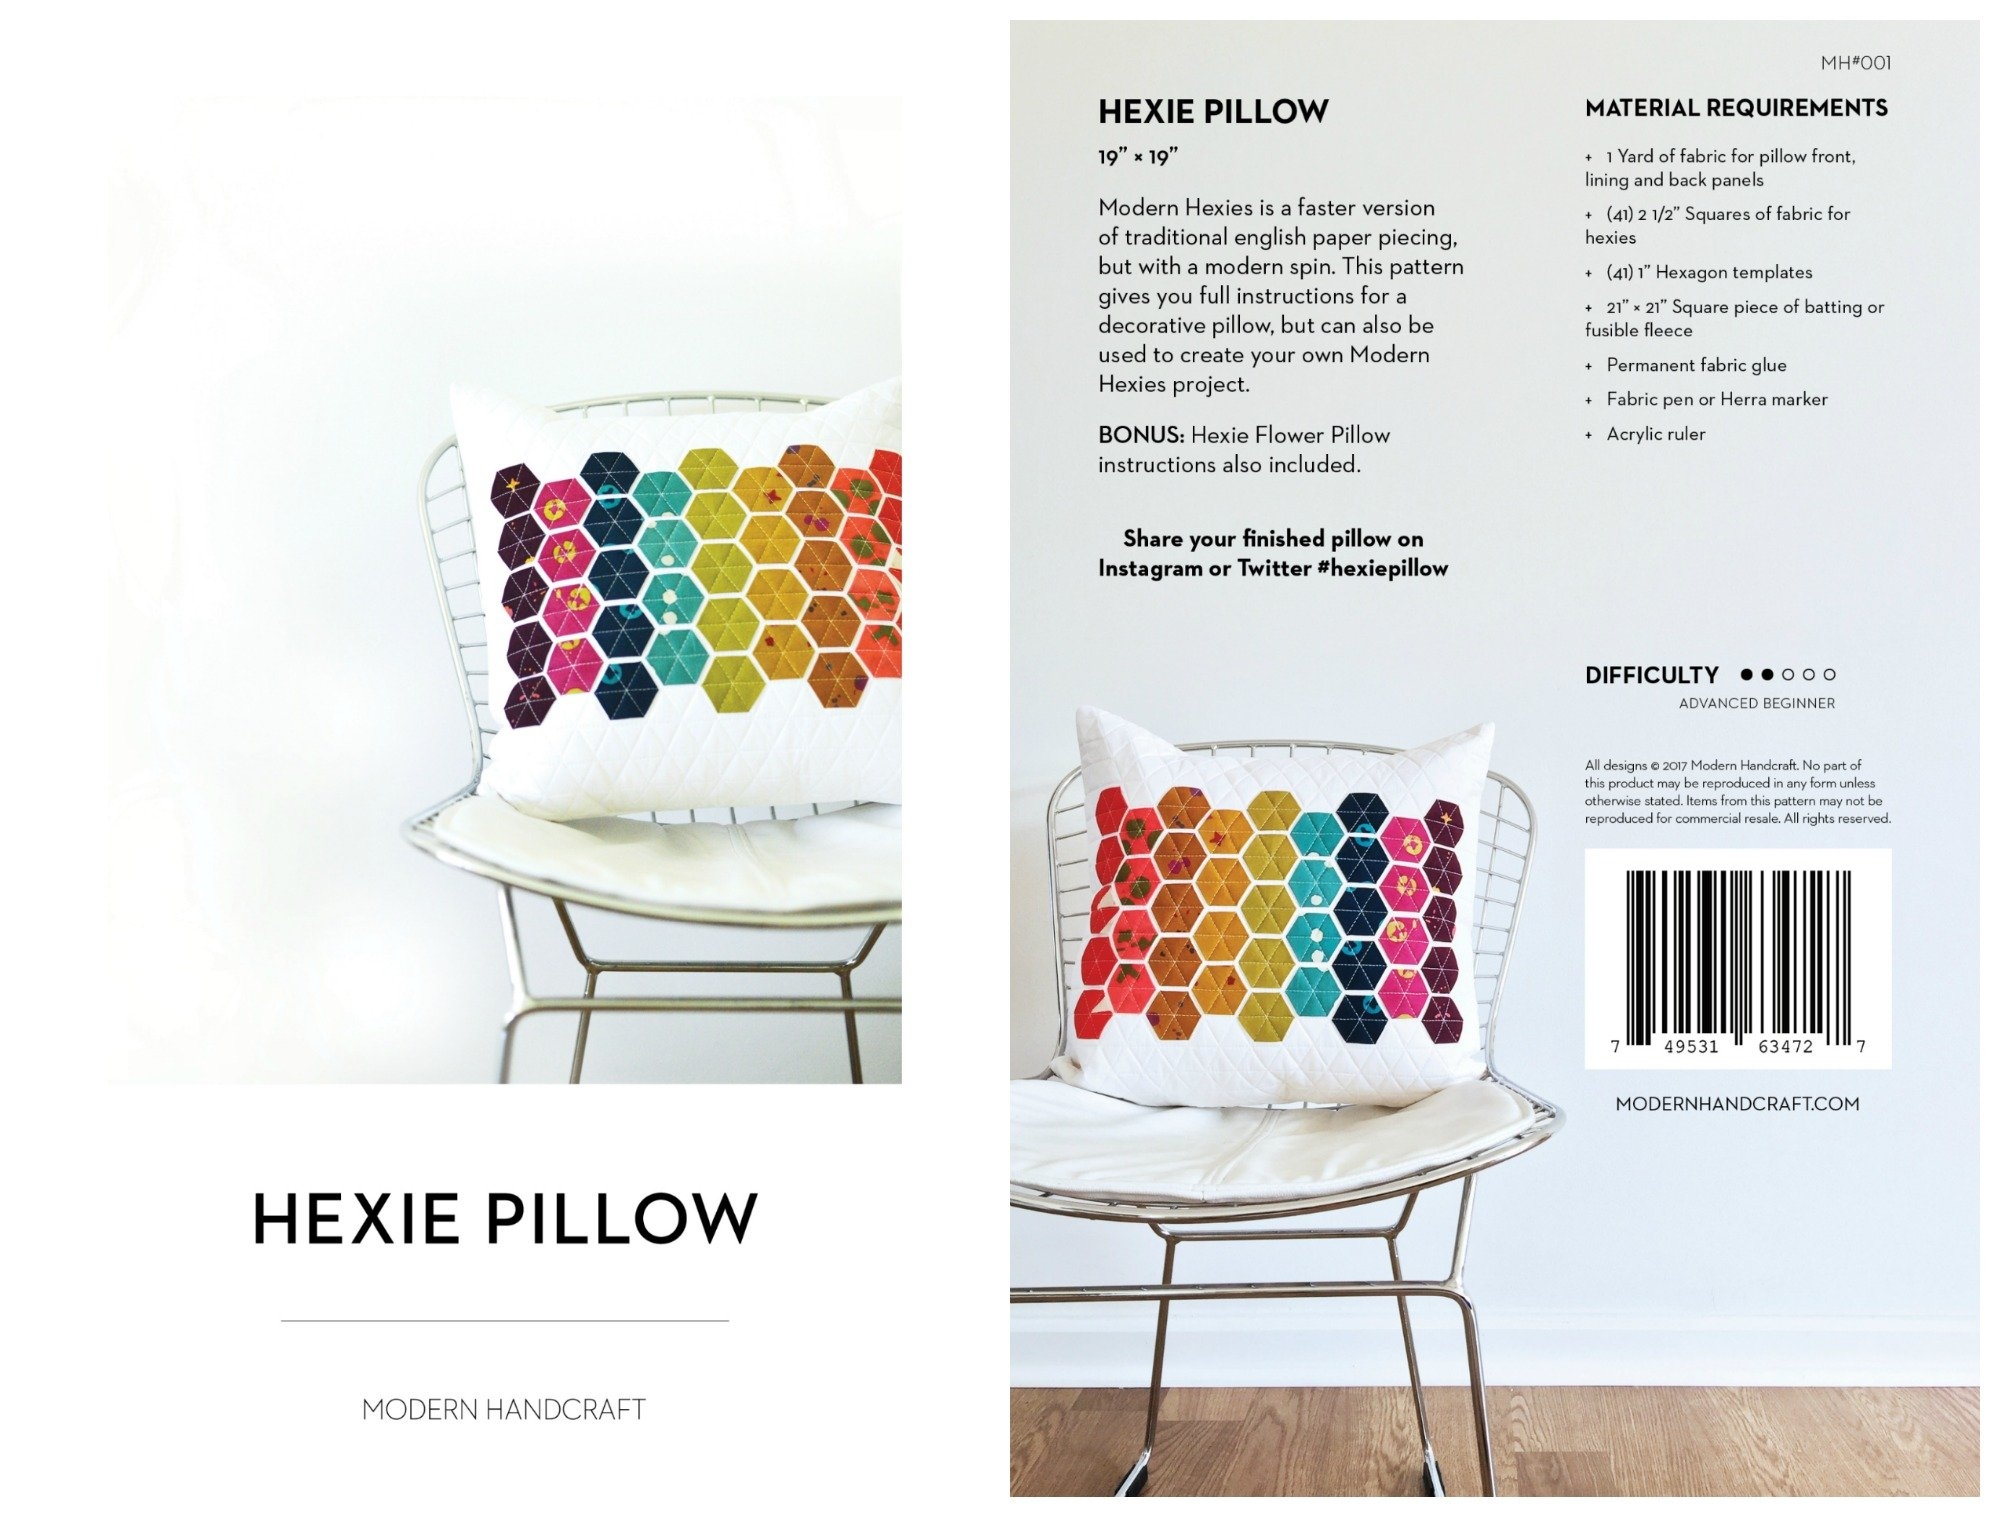 Hexie Pillow Pattern - Modern Handcraft